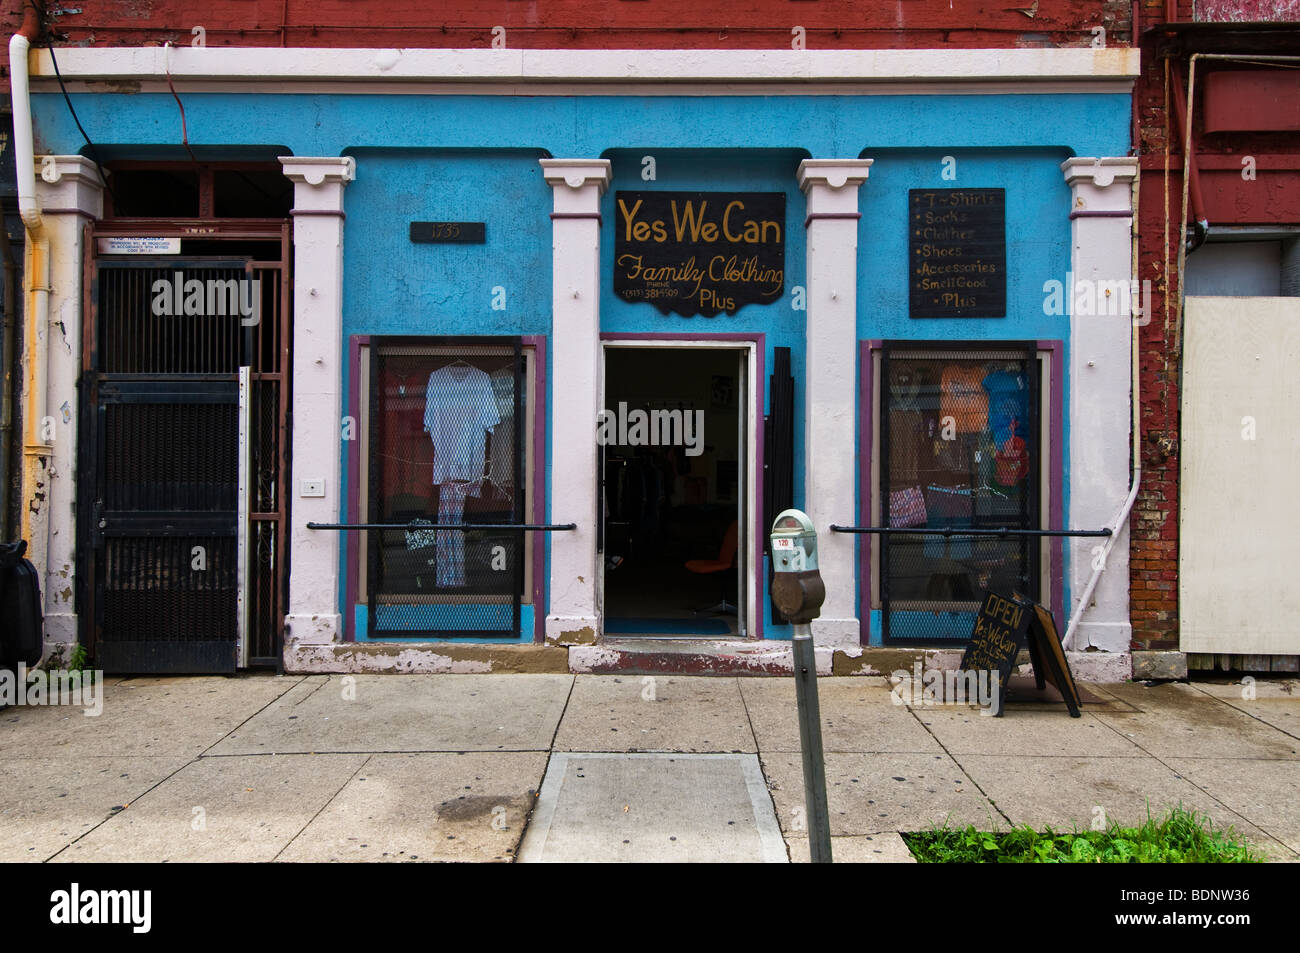 Yes we can, second hand clothes, shop in Over the rhine area, cincinnati, Oh, USA - Stock Image